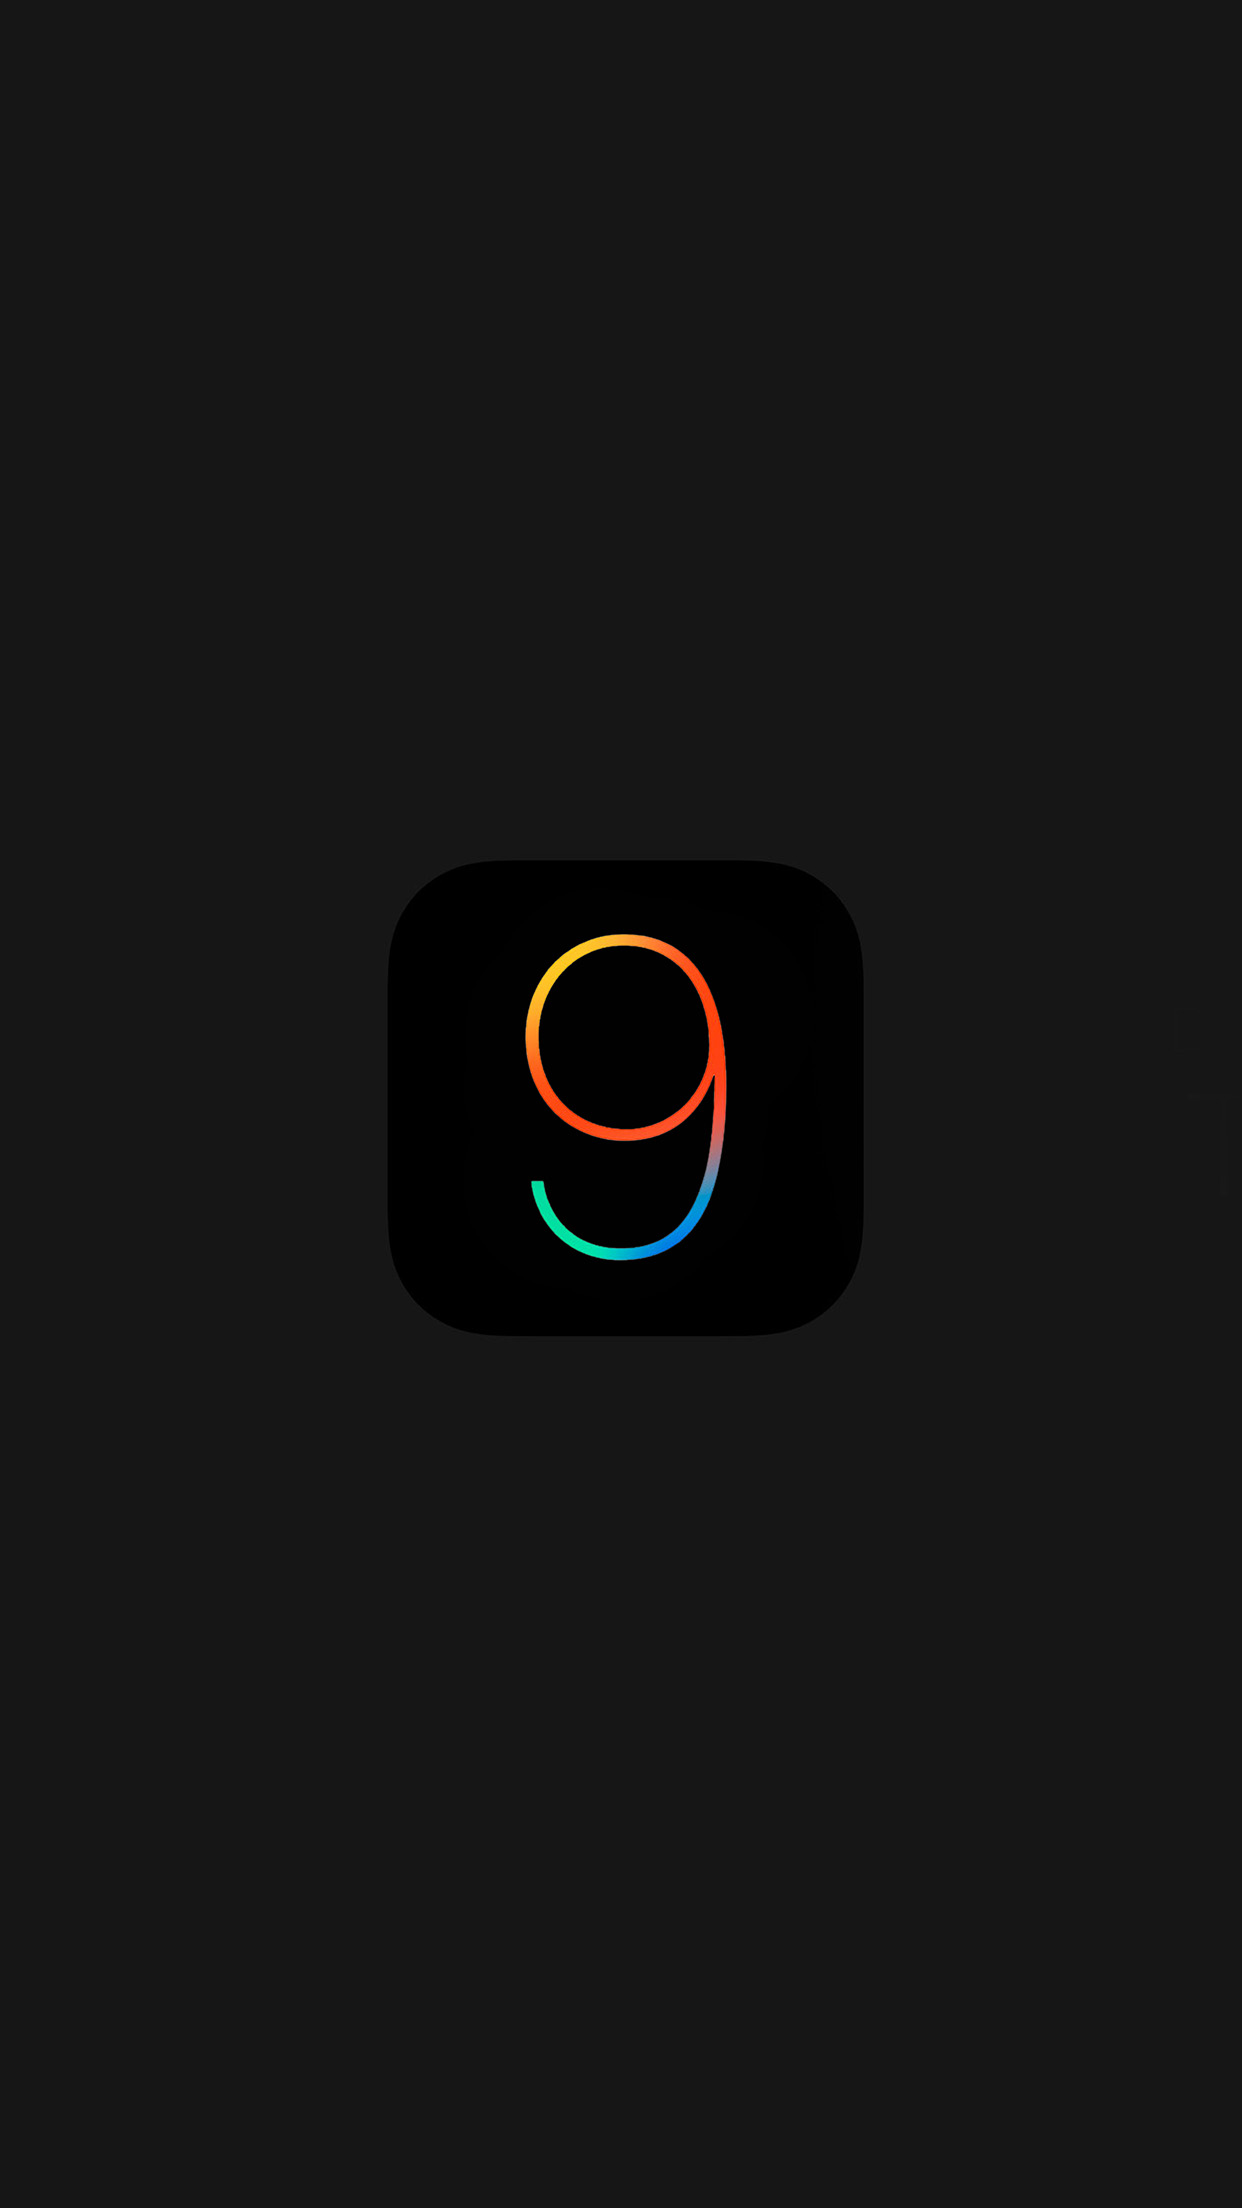 Ios9 Dark Logo Apple New Minimal Black Minimal